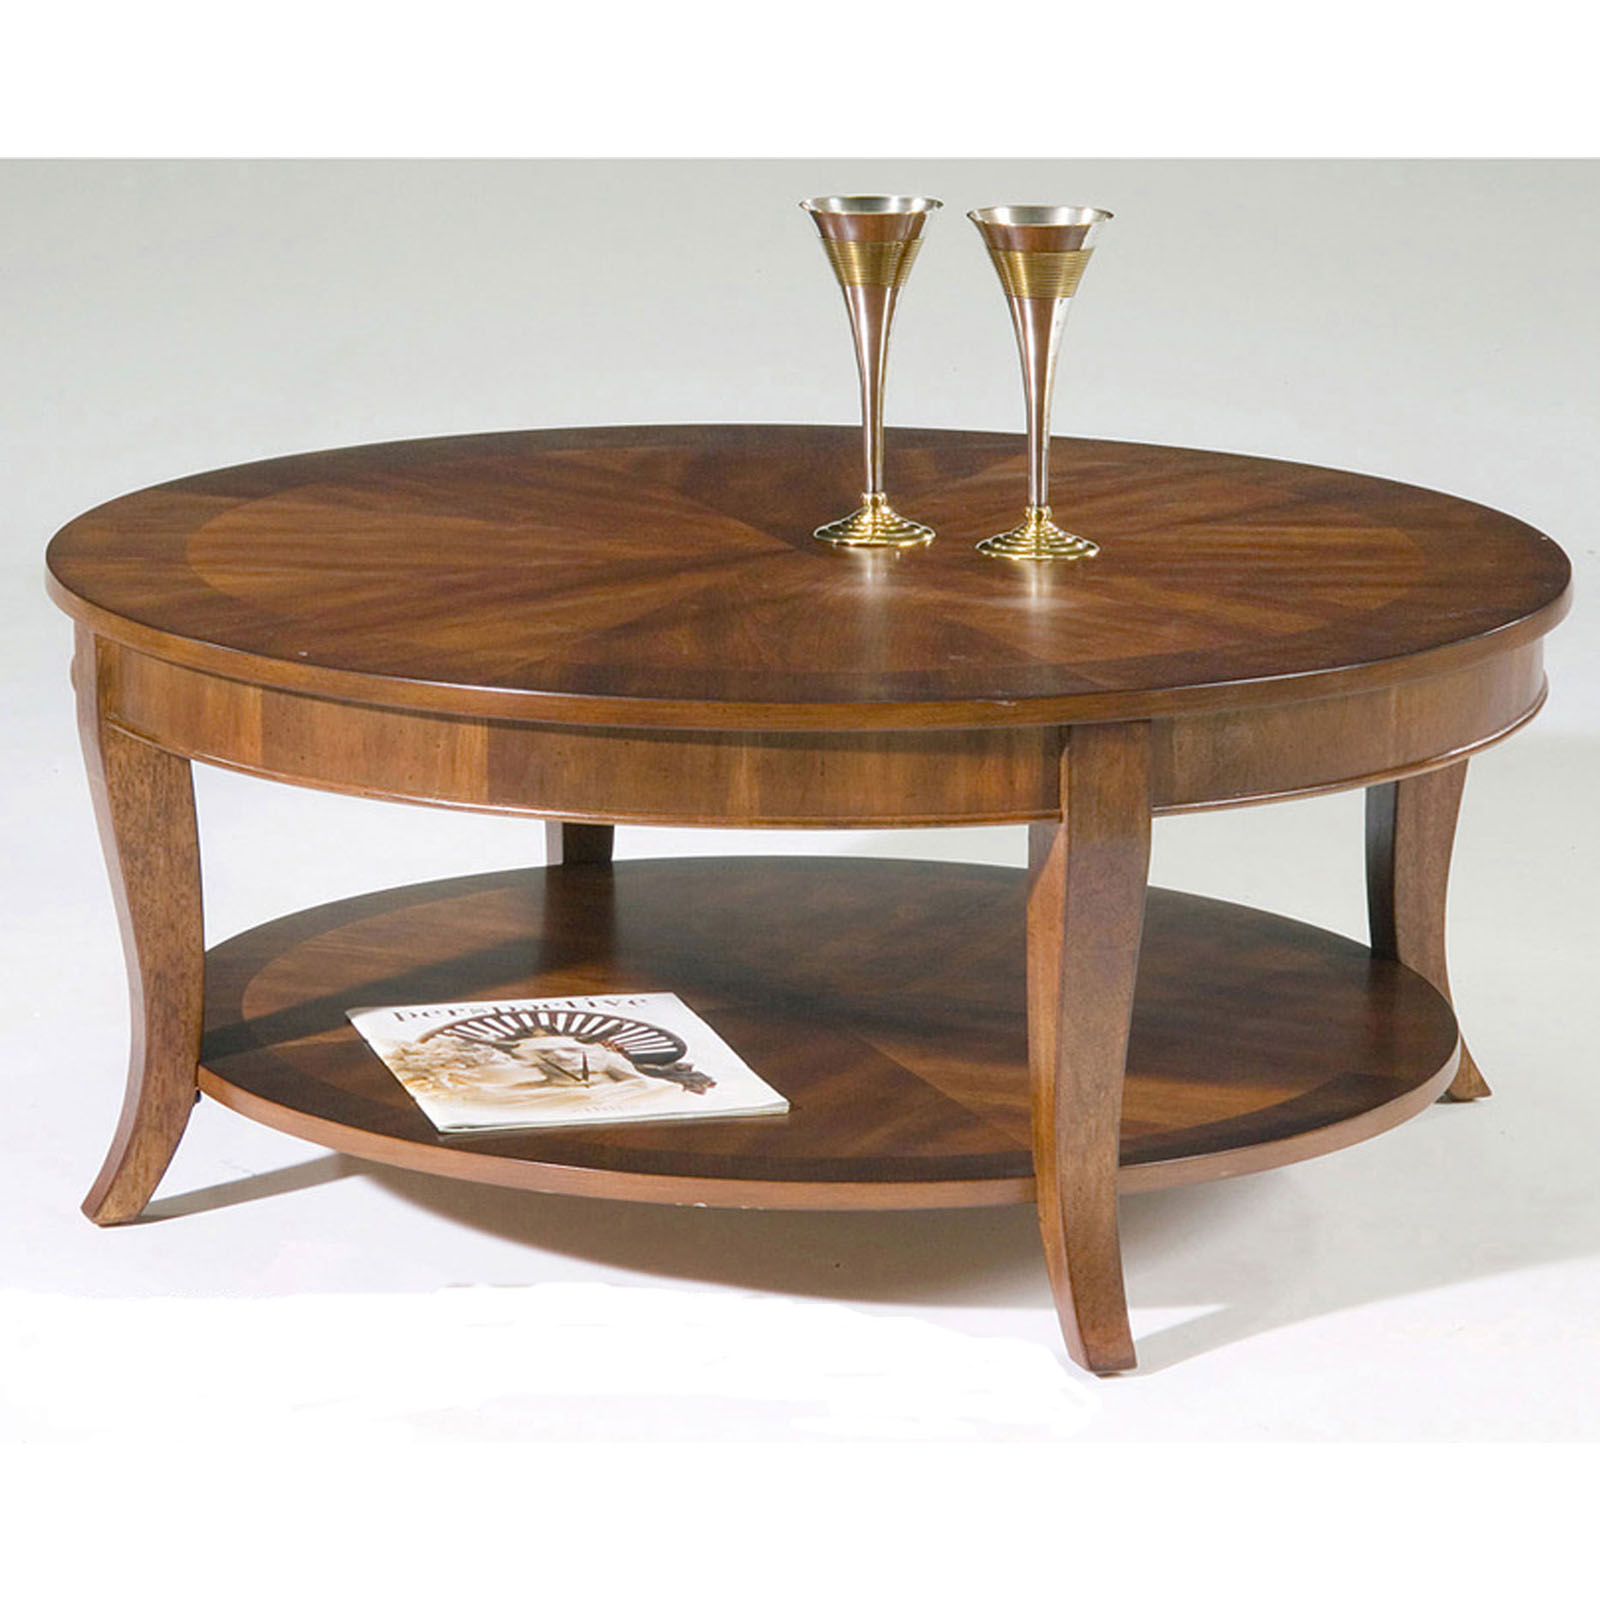 19 20 Inch Coffee Tables on Hayneedle Coffee Tables 19 20 Inches